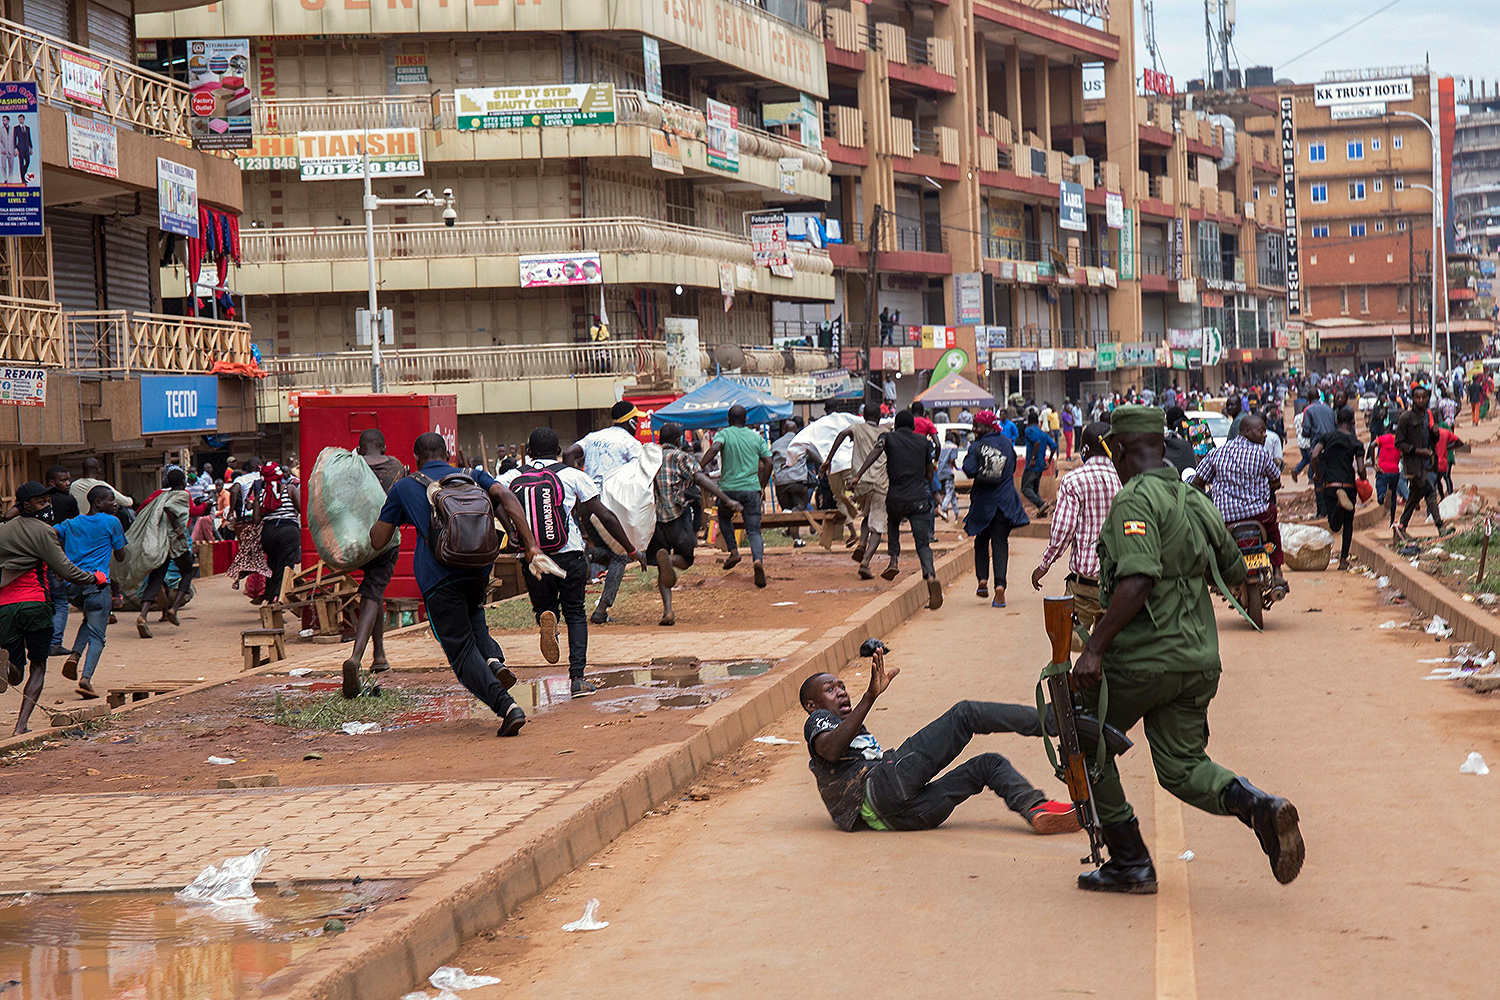 A police officer chases street vendors in Kampala, Uganda, on March 26 after the president directed the public to shelter in place for 32 days to curb the spread of the coronavirus. BADRU KATUMBA/AFP via Getty Images